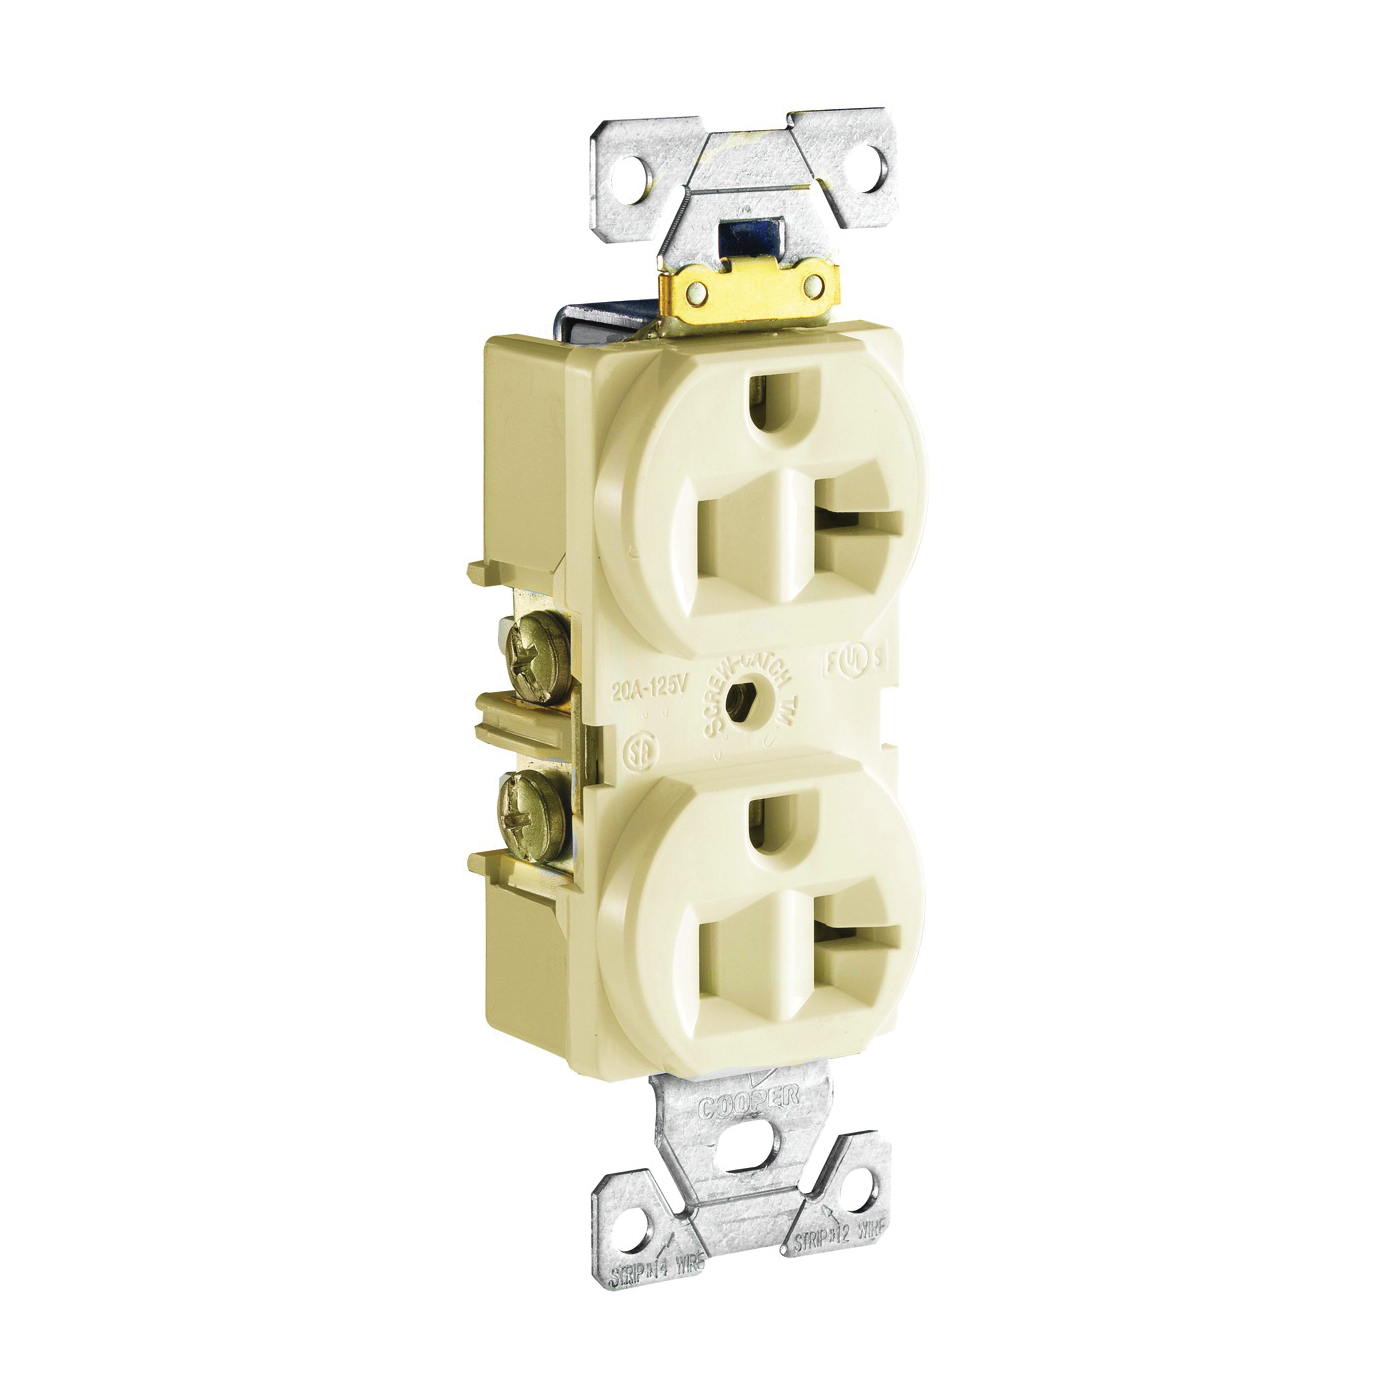 Picture of Eaton Wiring Devices CR20V Duplex Receptacle, 2-Pole, 20 A, 125 V, Side Wiring, NEMA: 5-20R, Ivory